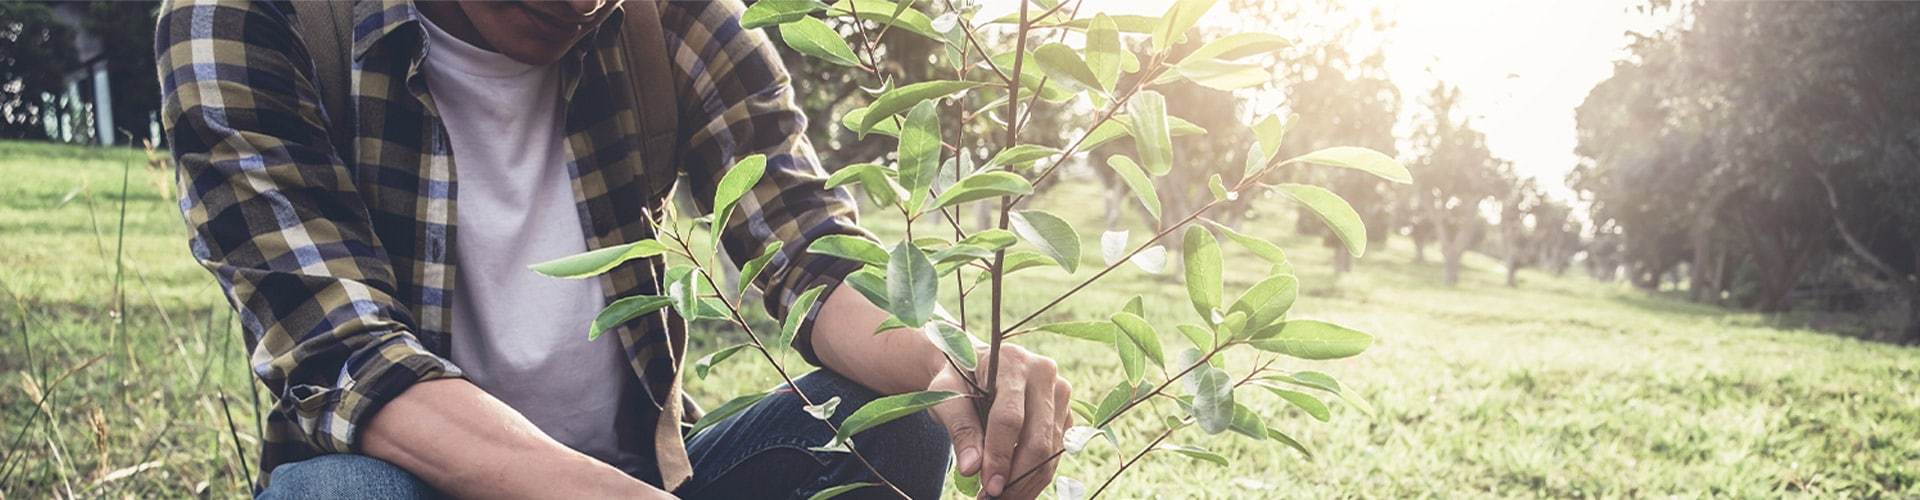 Helping our planet with Sociabble Trees